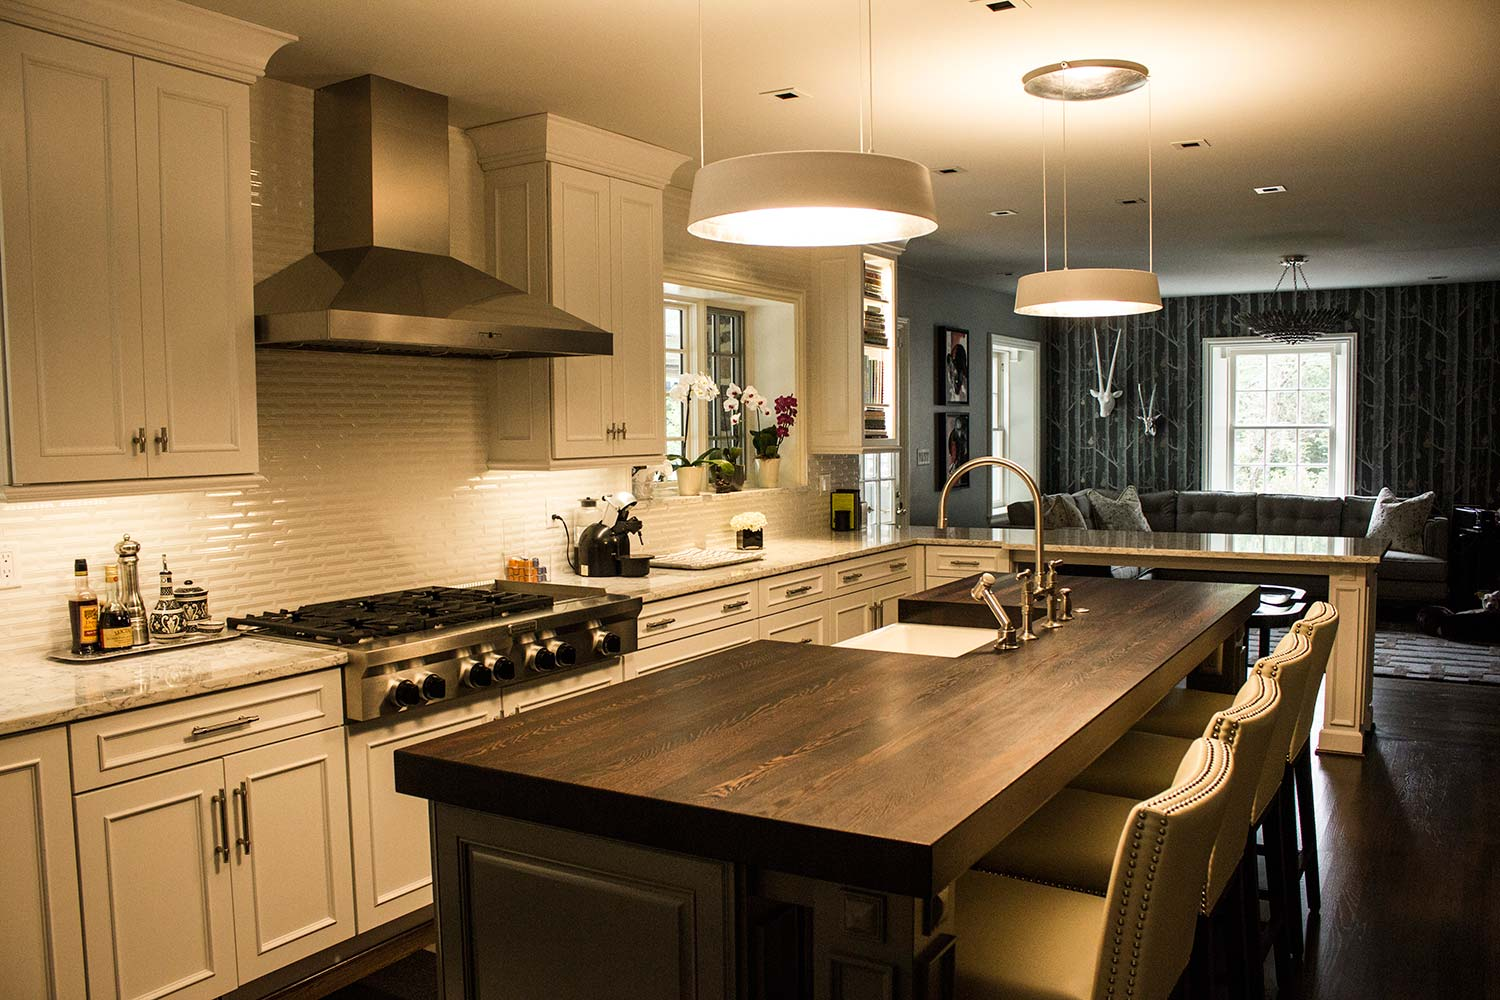 replacing kitchen countertops microfiber towels replace your butcher block island top with a reclaimed